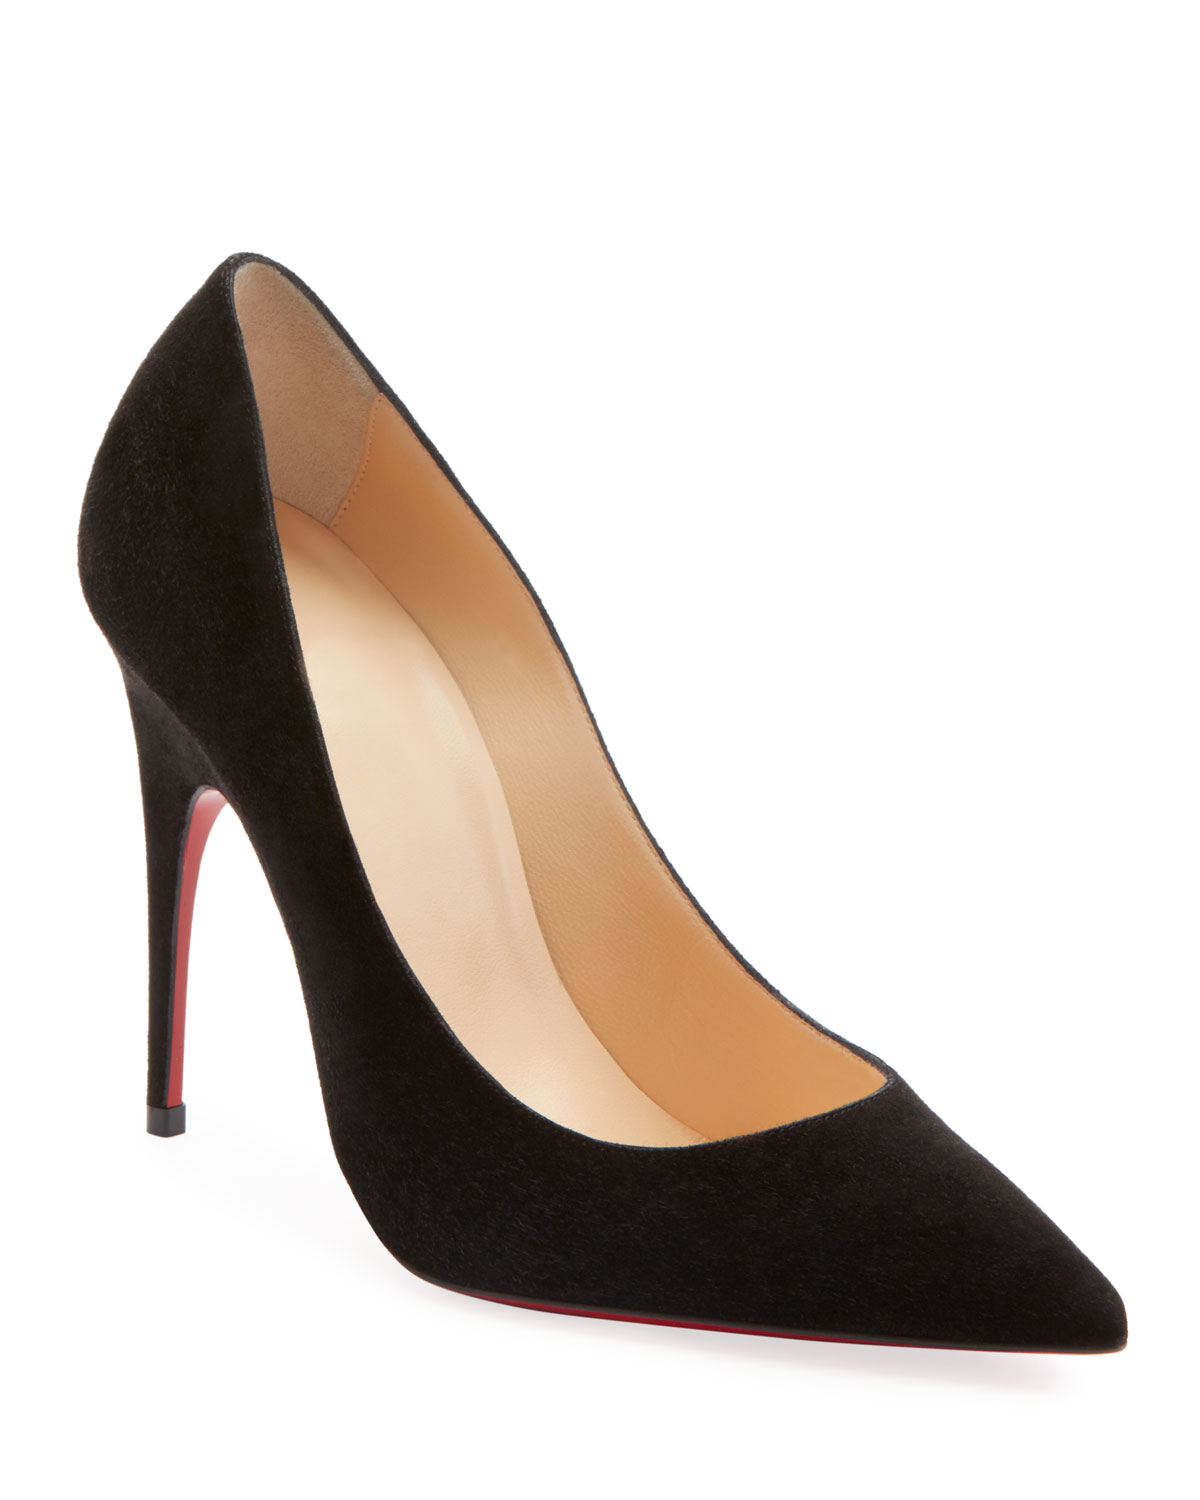 CHRISTIAN LOUBOUTIN Alminette 100 Suede Pumps in Black